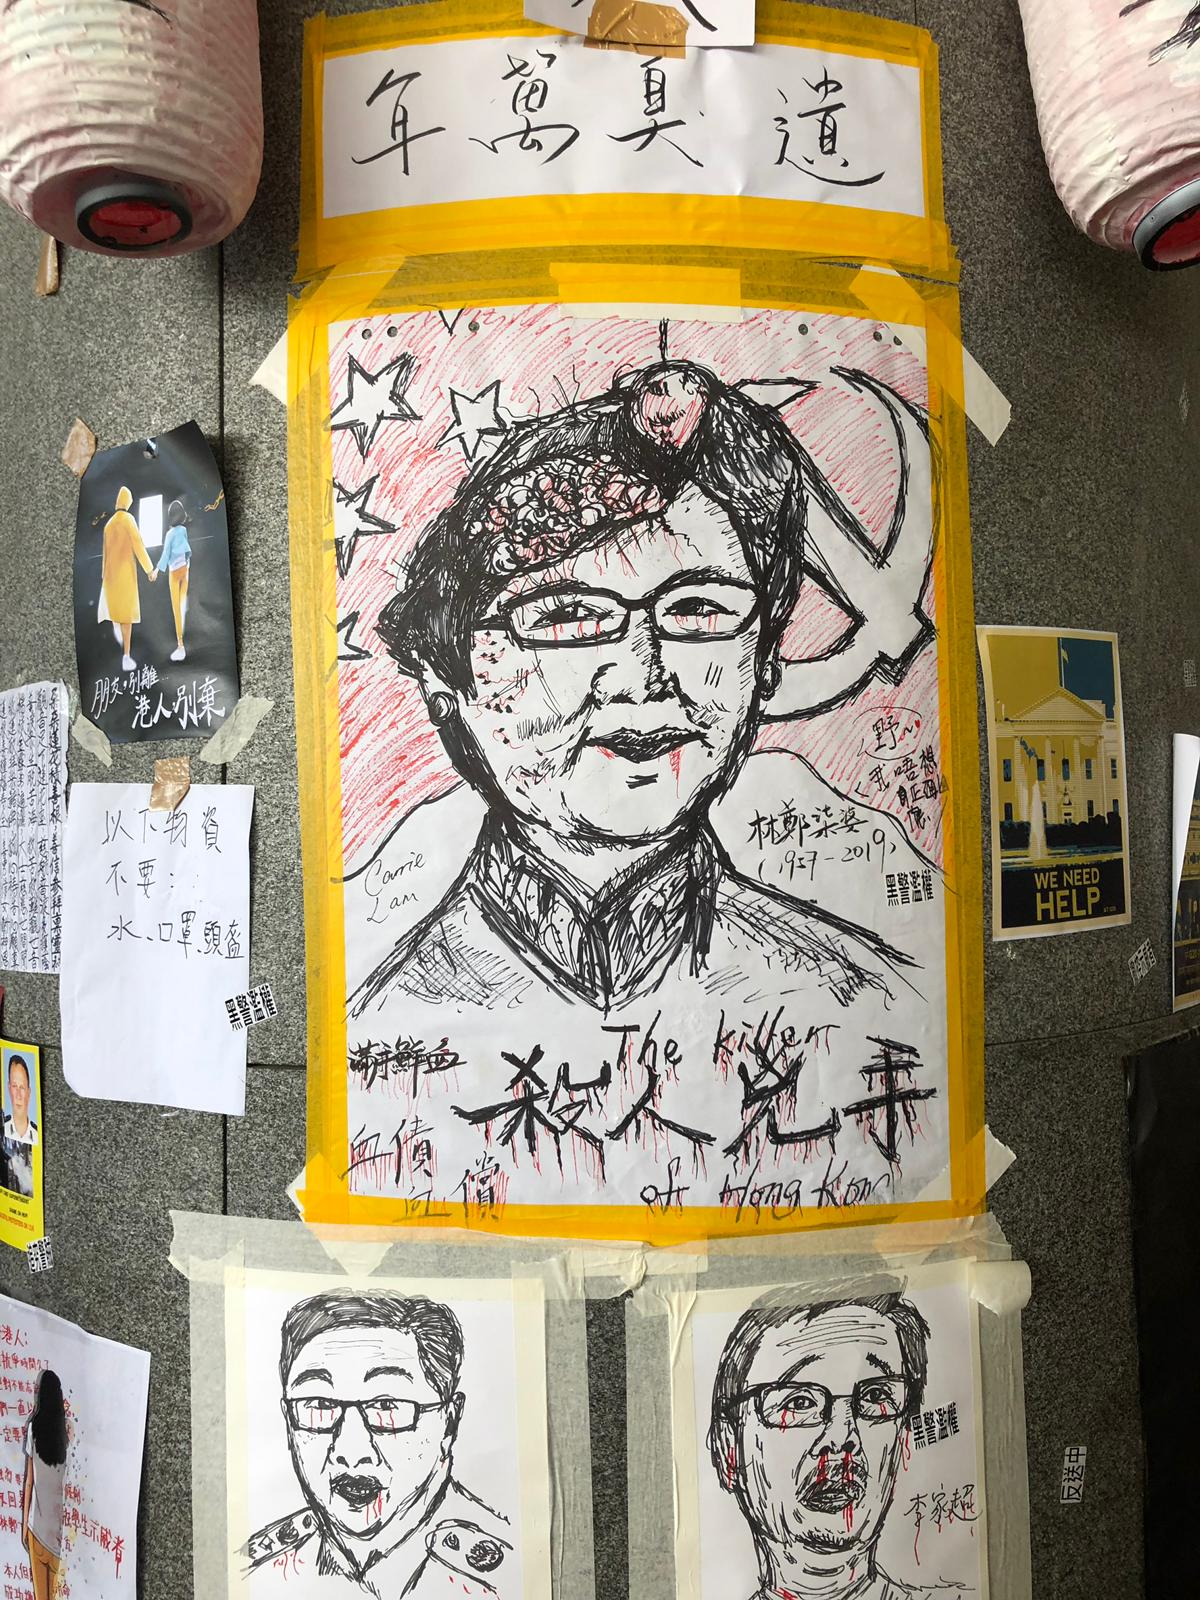 Posters near Hong Kong's government headquarters satirize city officials, including Chief Executive Carrie Lam.